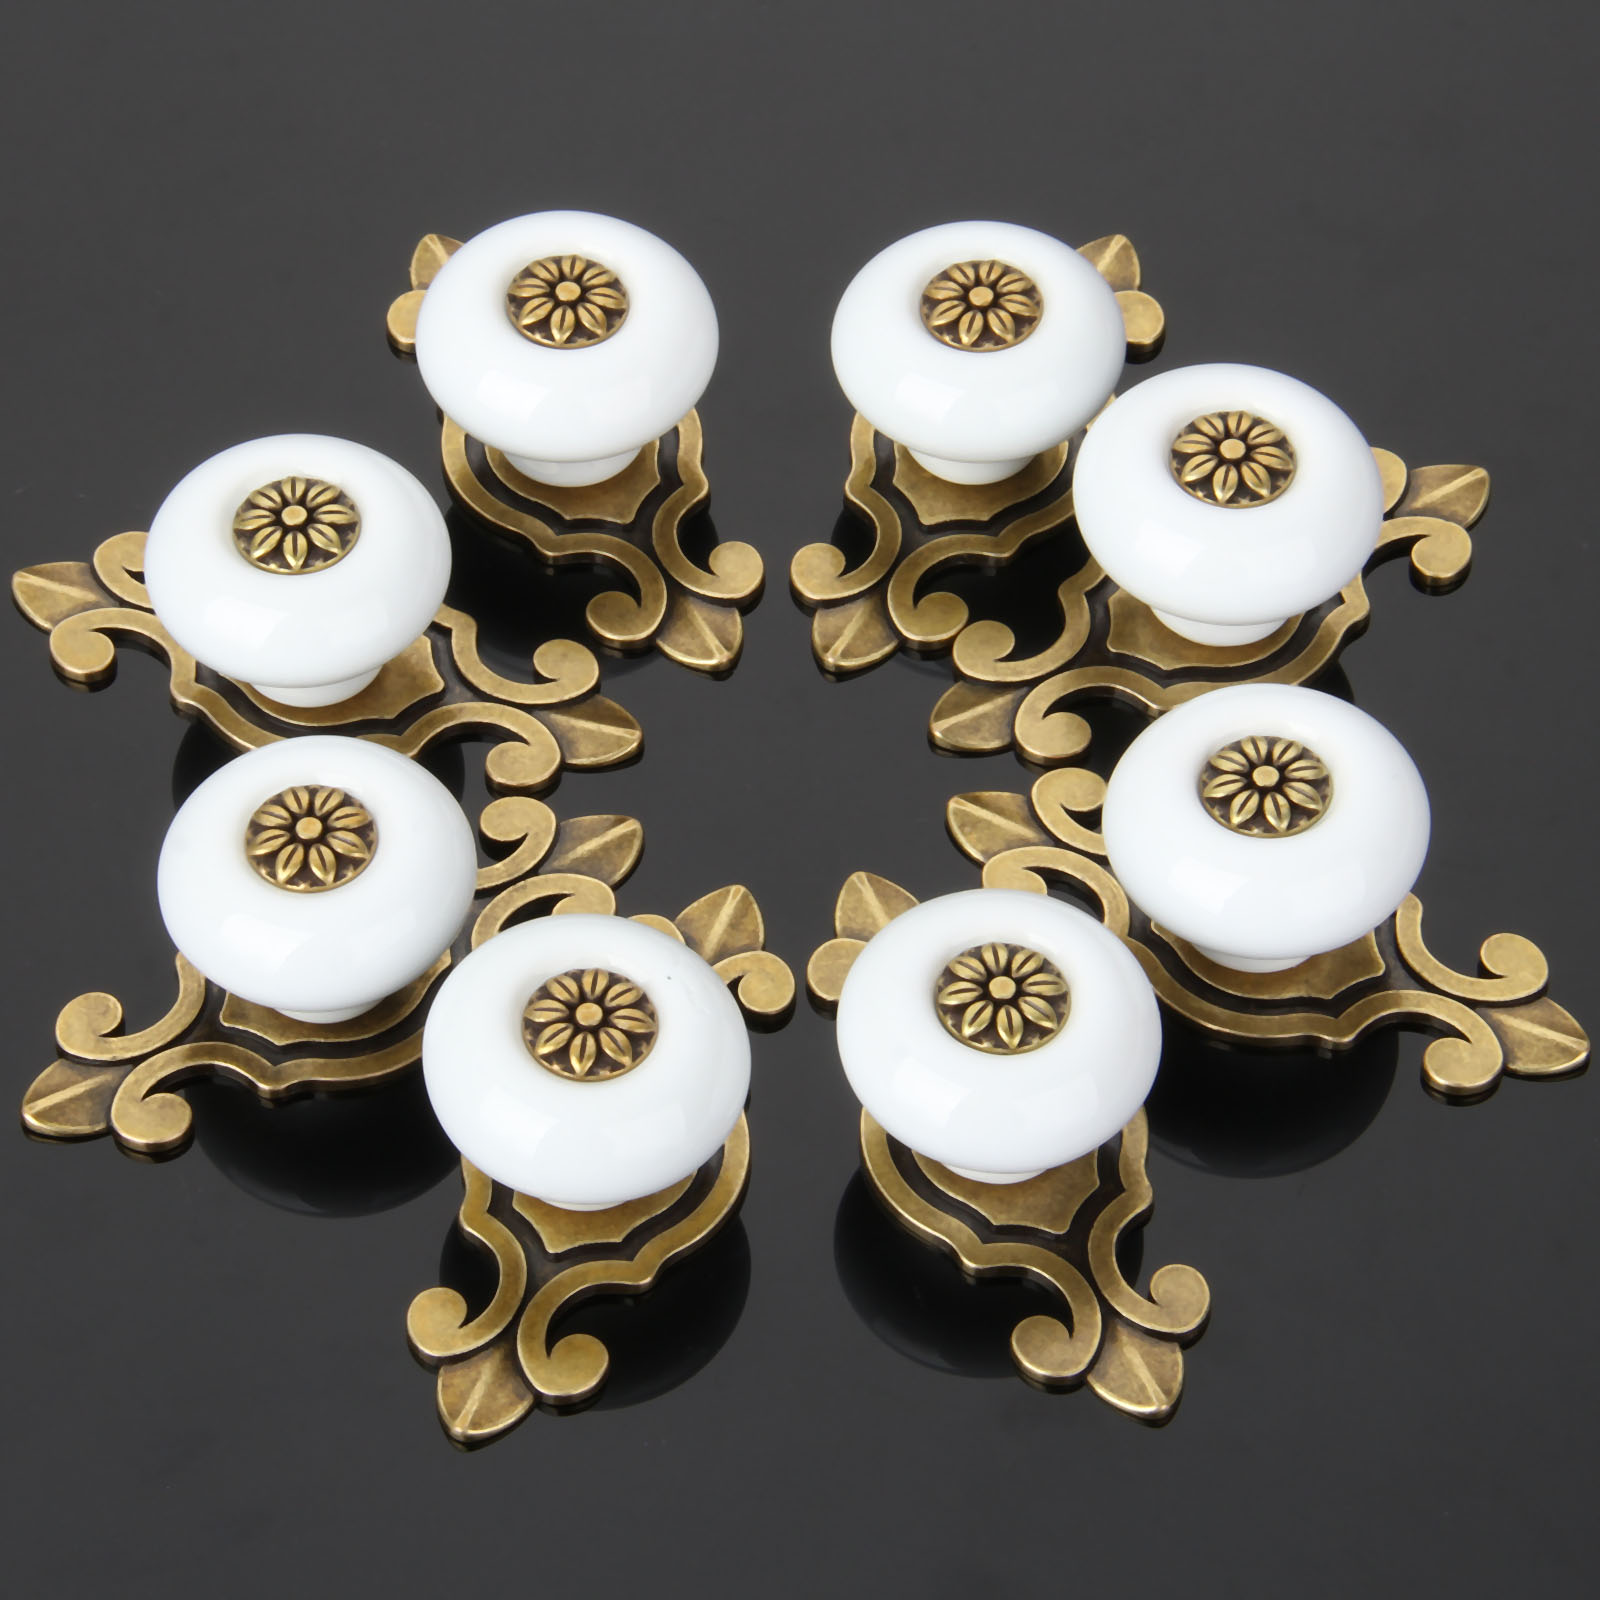 8Pcs Furniture Handle Ceramic Cabinet Knobs and Handles Door Cupboard Drawer Kitchen Pull Handle Furniture Fitting Bronze White hot brown handle single hole leather door handles cabinet cupboard drawer pull knobs furniture kitchen accessories 96 160 192mm